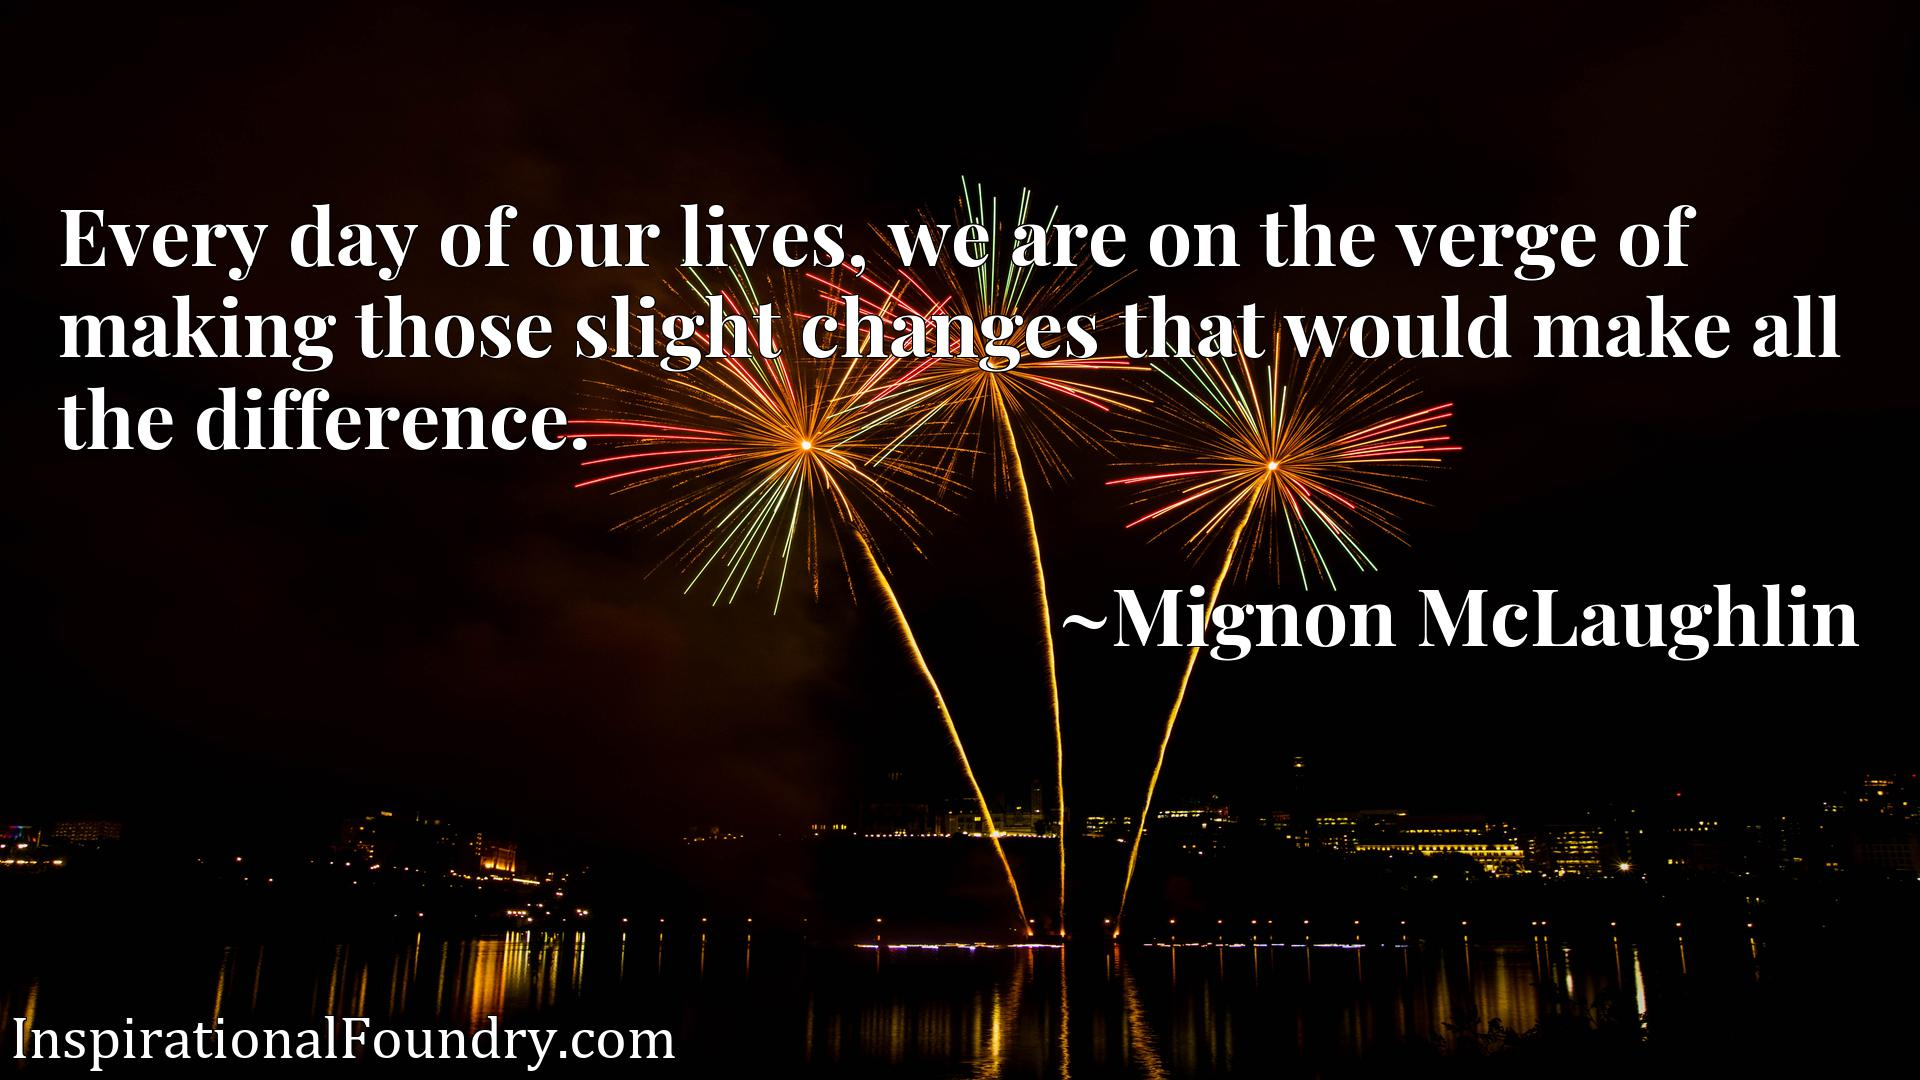 Every day of our lives, we are on the verge of making those slight changes that would make all the difference.